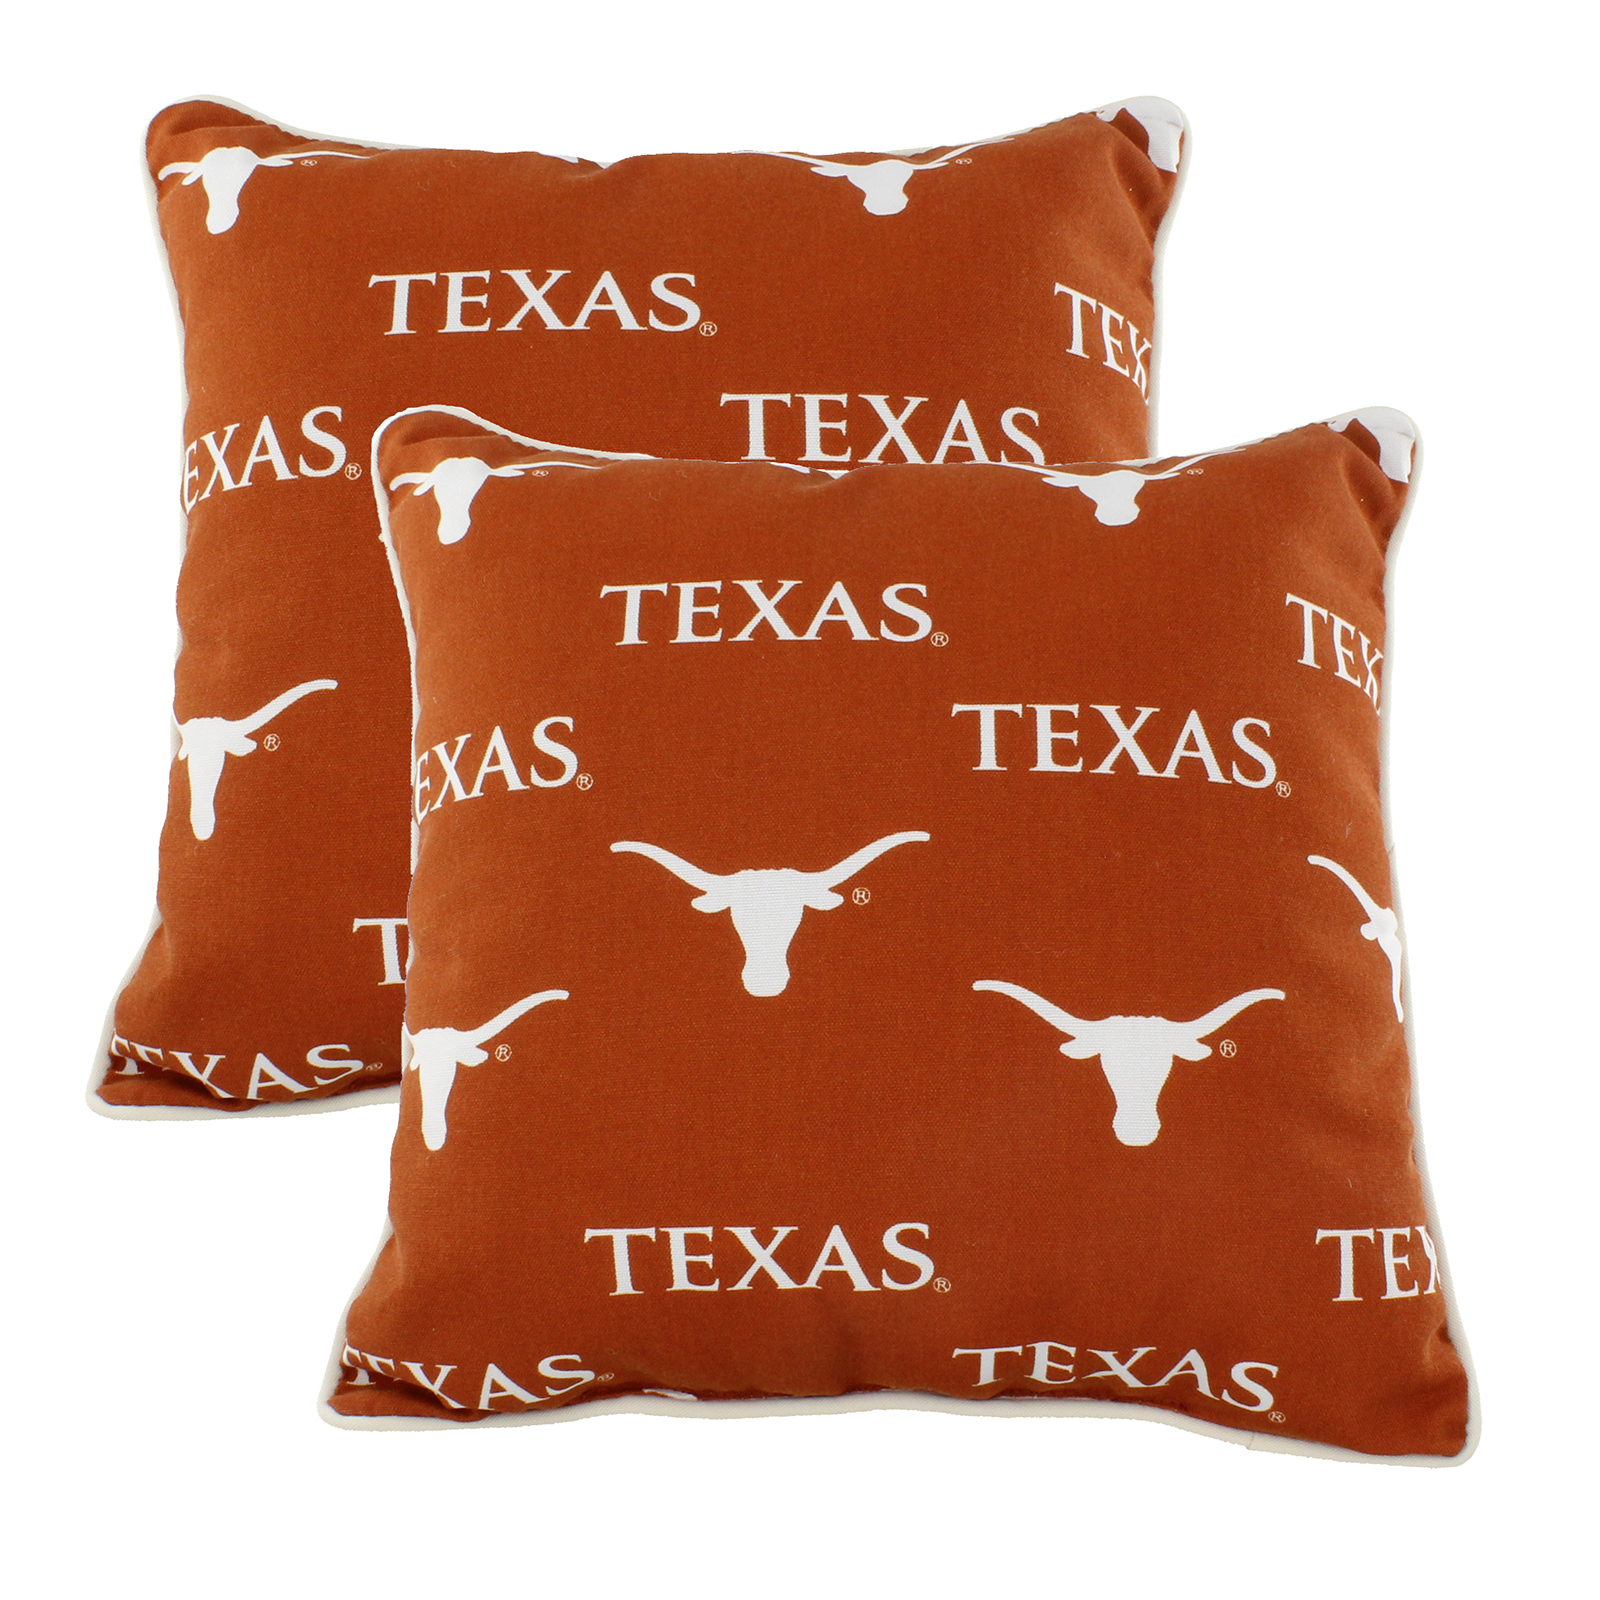 Texas Longhorns College Covers Indoor Or Outdoor Decorative Pillow Pair 16 In X 16 In Walmart Com Walmart Com